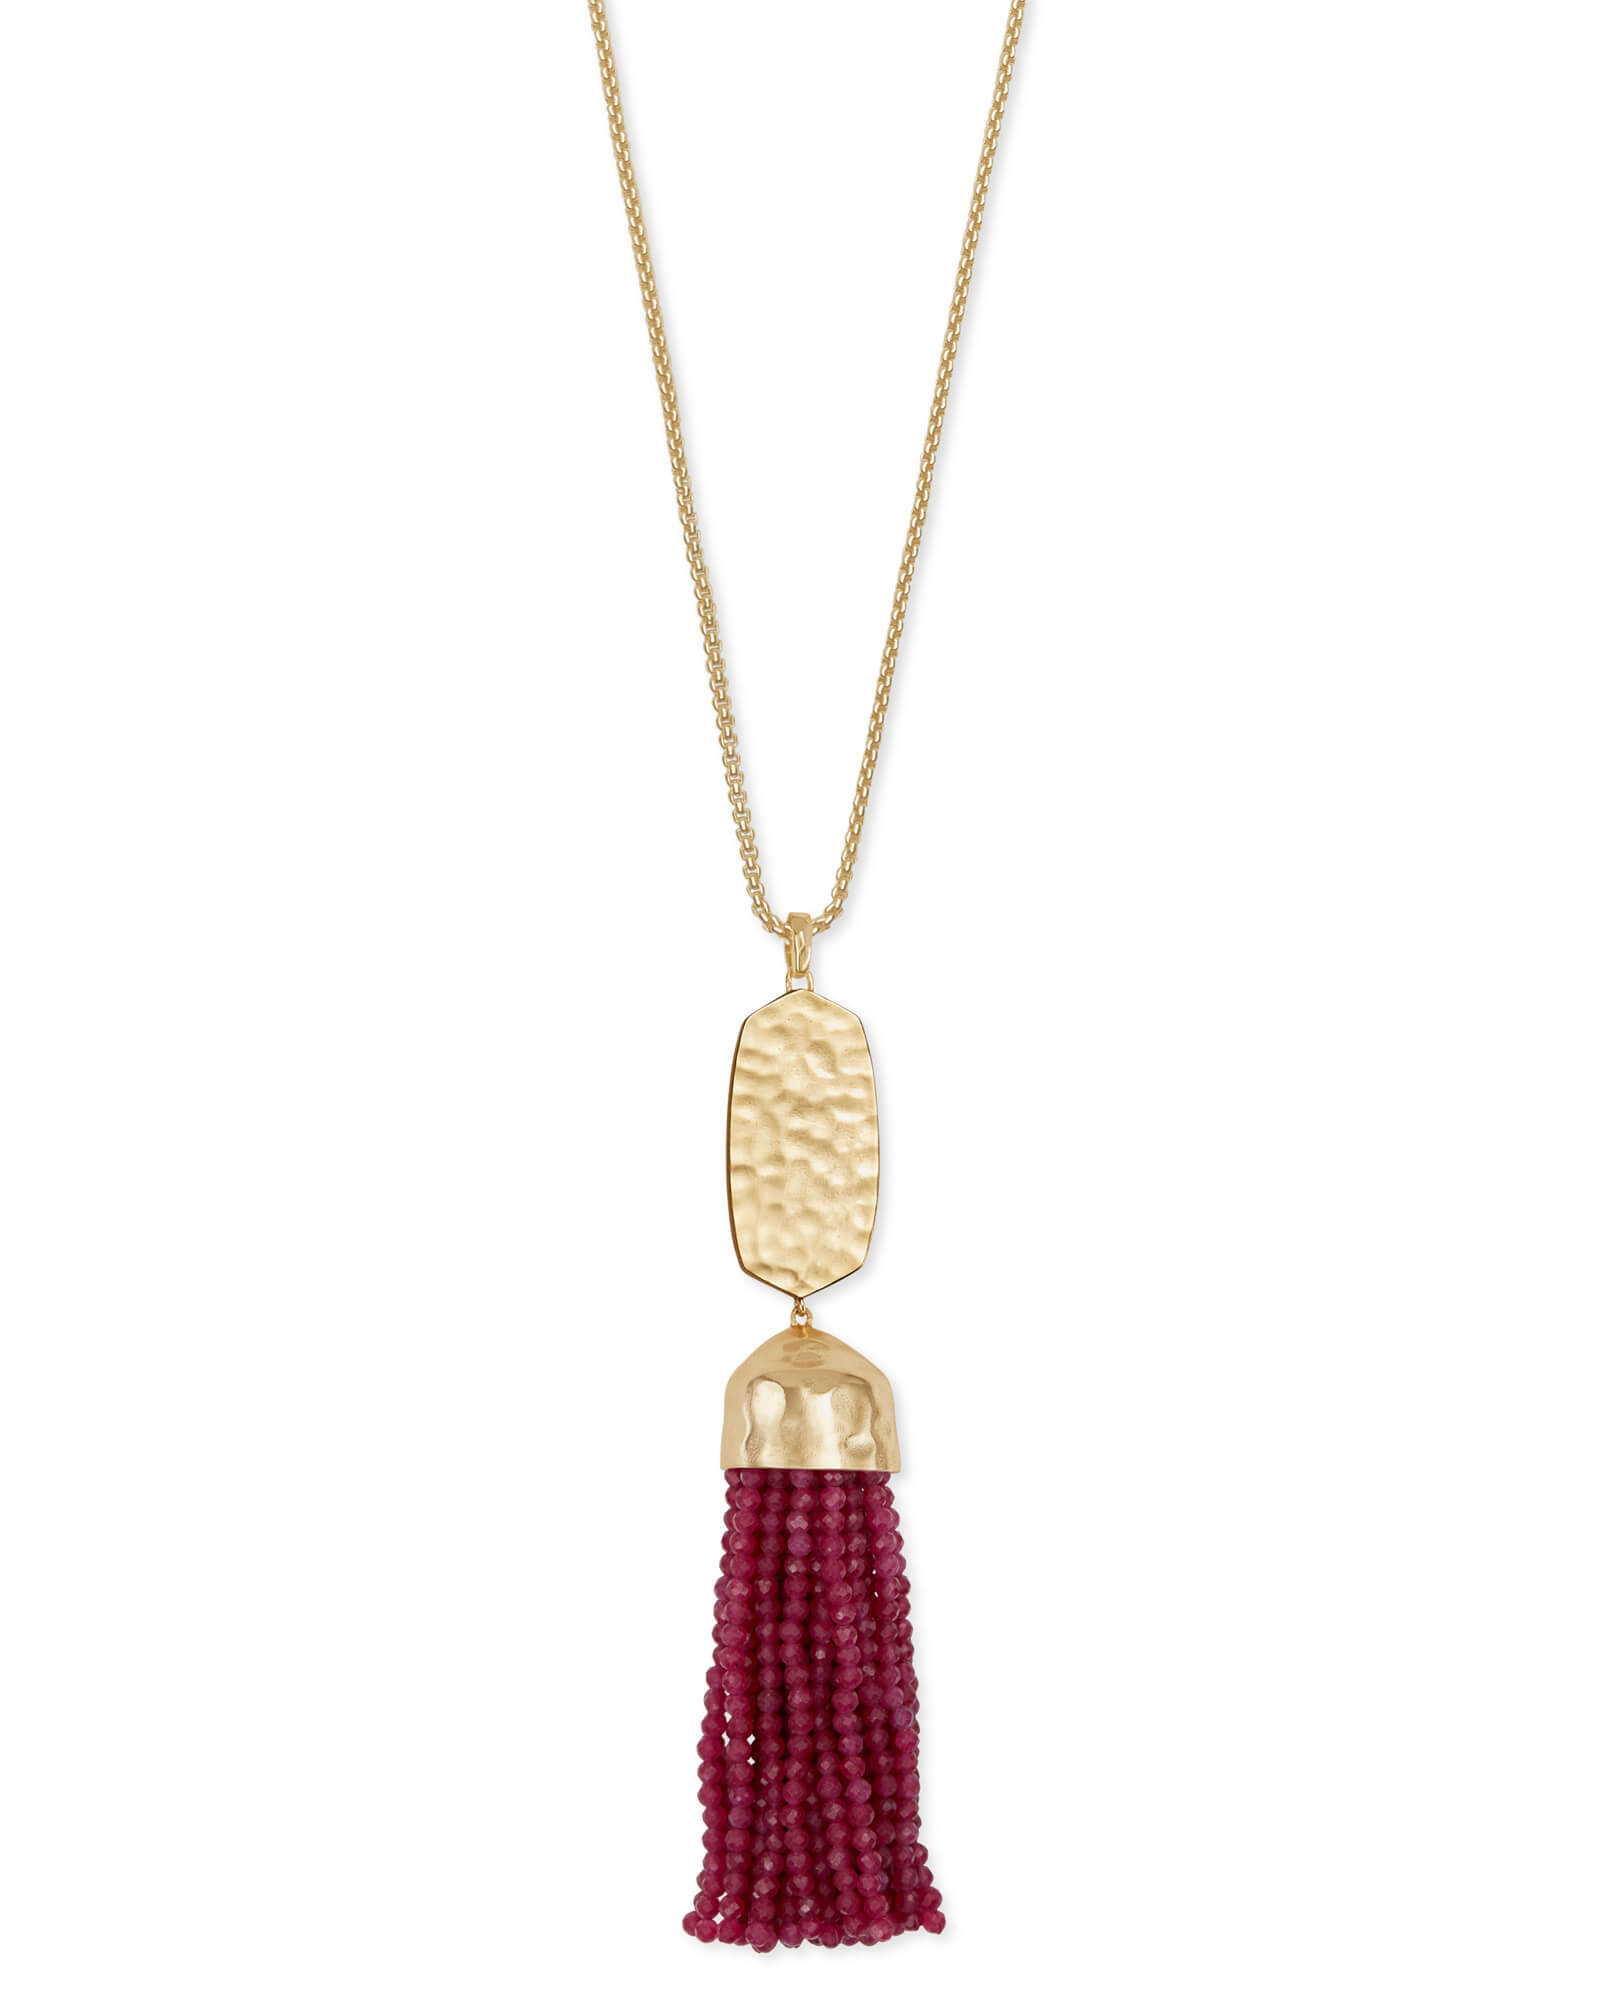 Monroe Gold Long Pendant Necklace in Maroon Jade